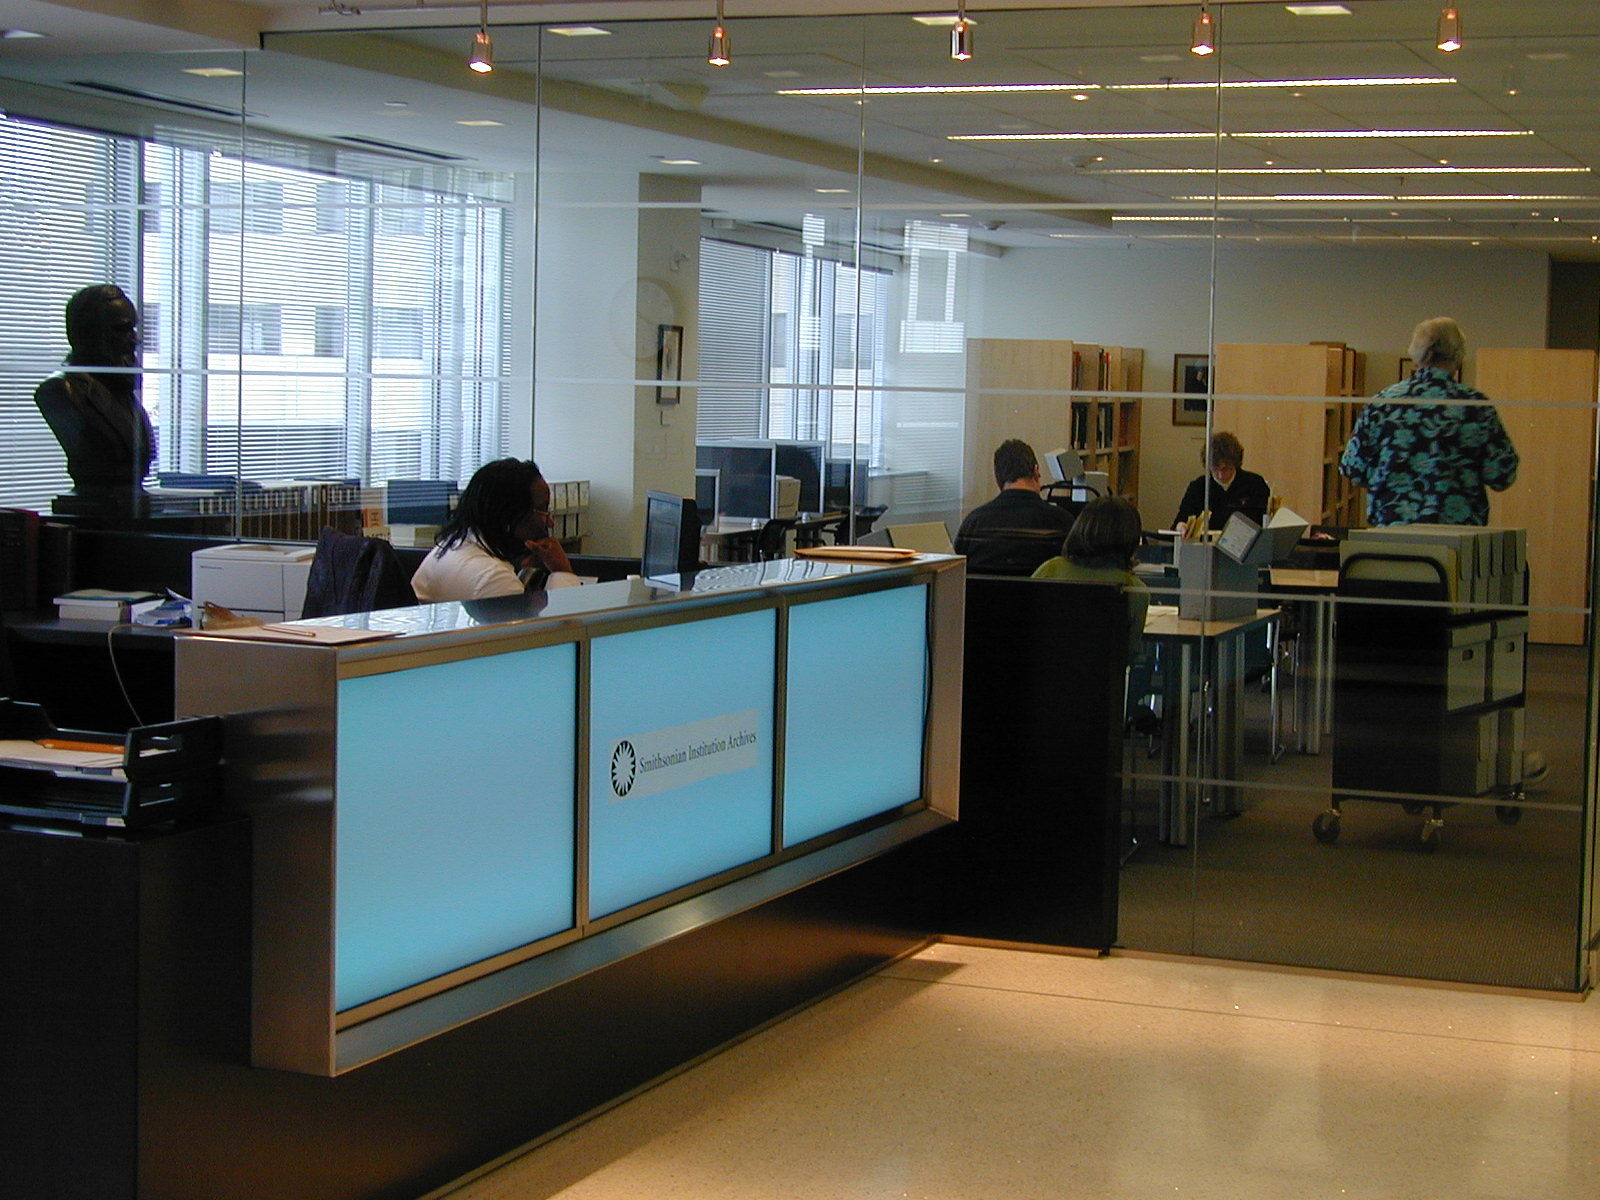 The Smithsonian Institution Archives� Front Desk, by Ken Rahaim, Courtesy of Smithsonian Institution Archives.